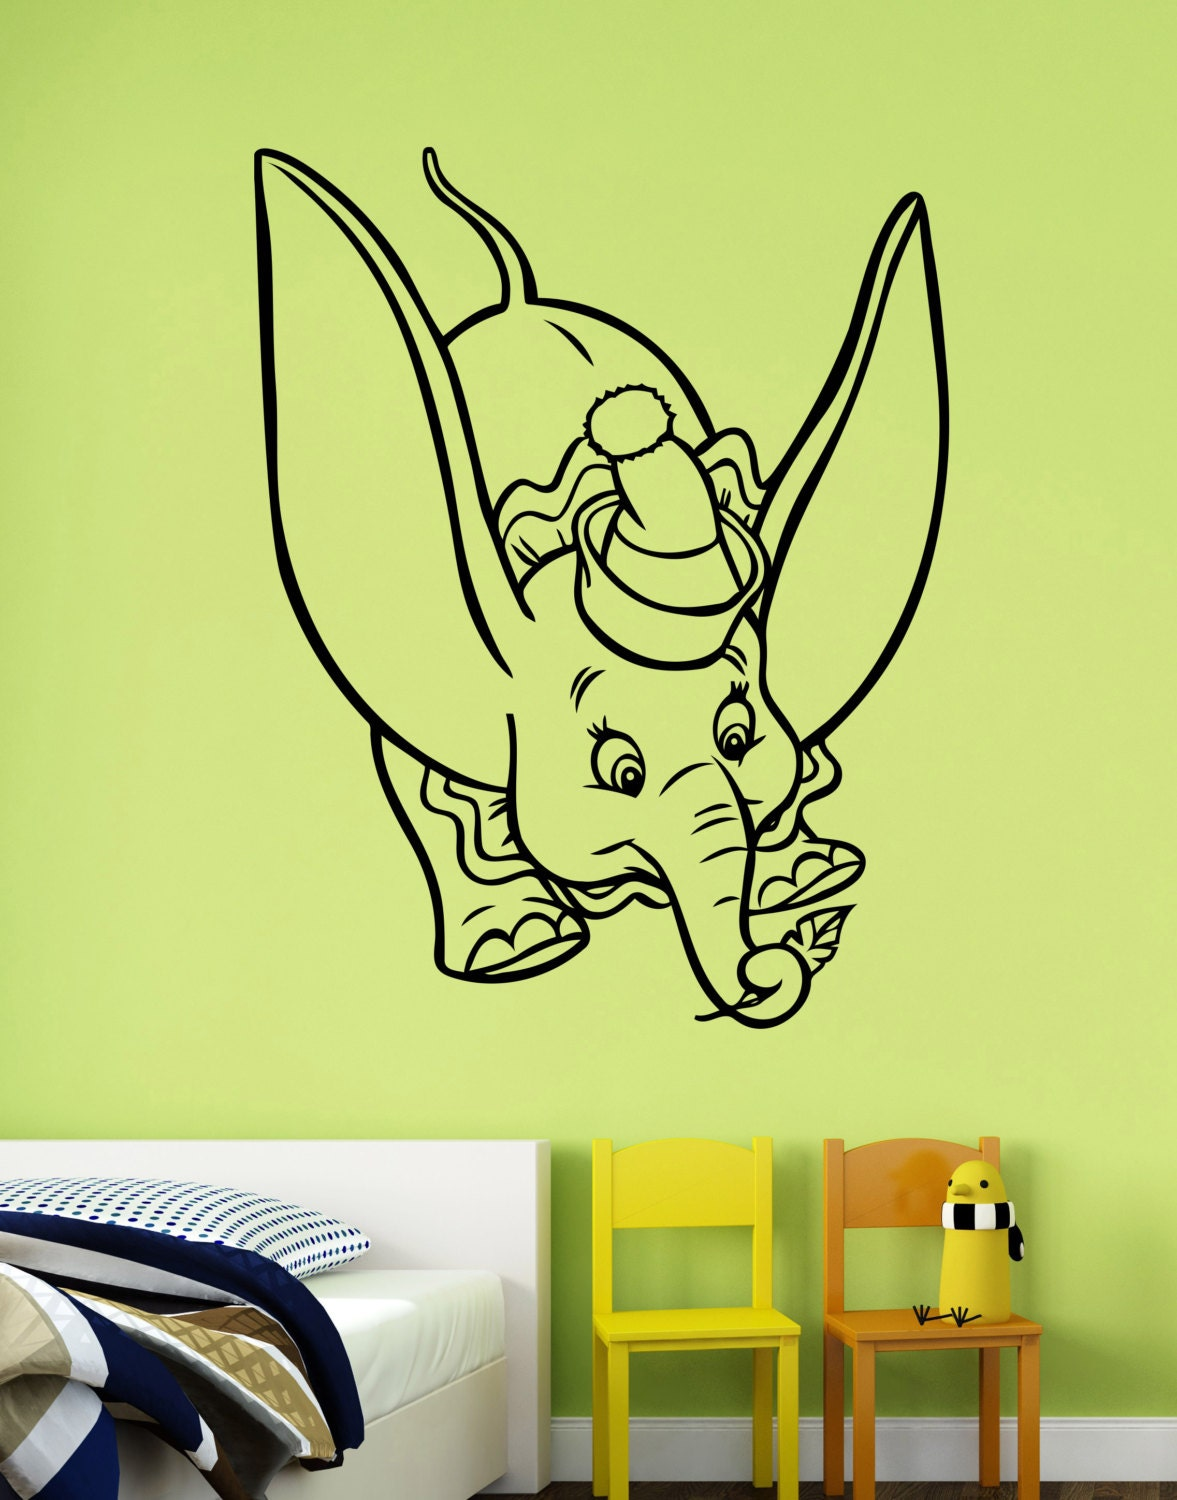 dumbo wall decal vinyl sticker disney movie art decorations dumbo the elephant disney decal removable wall sticker